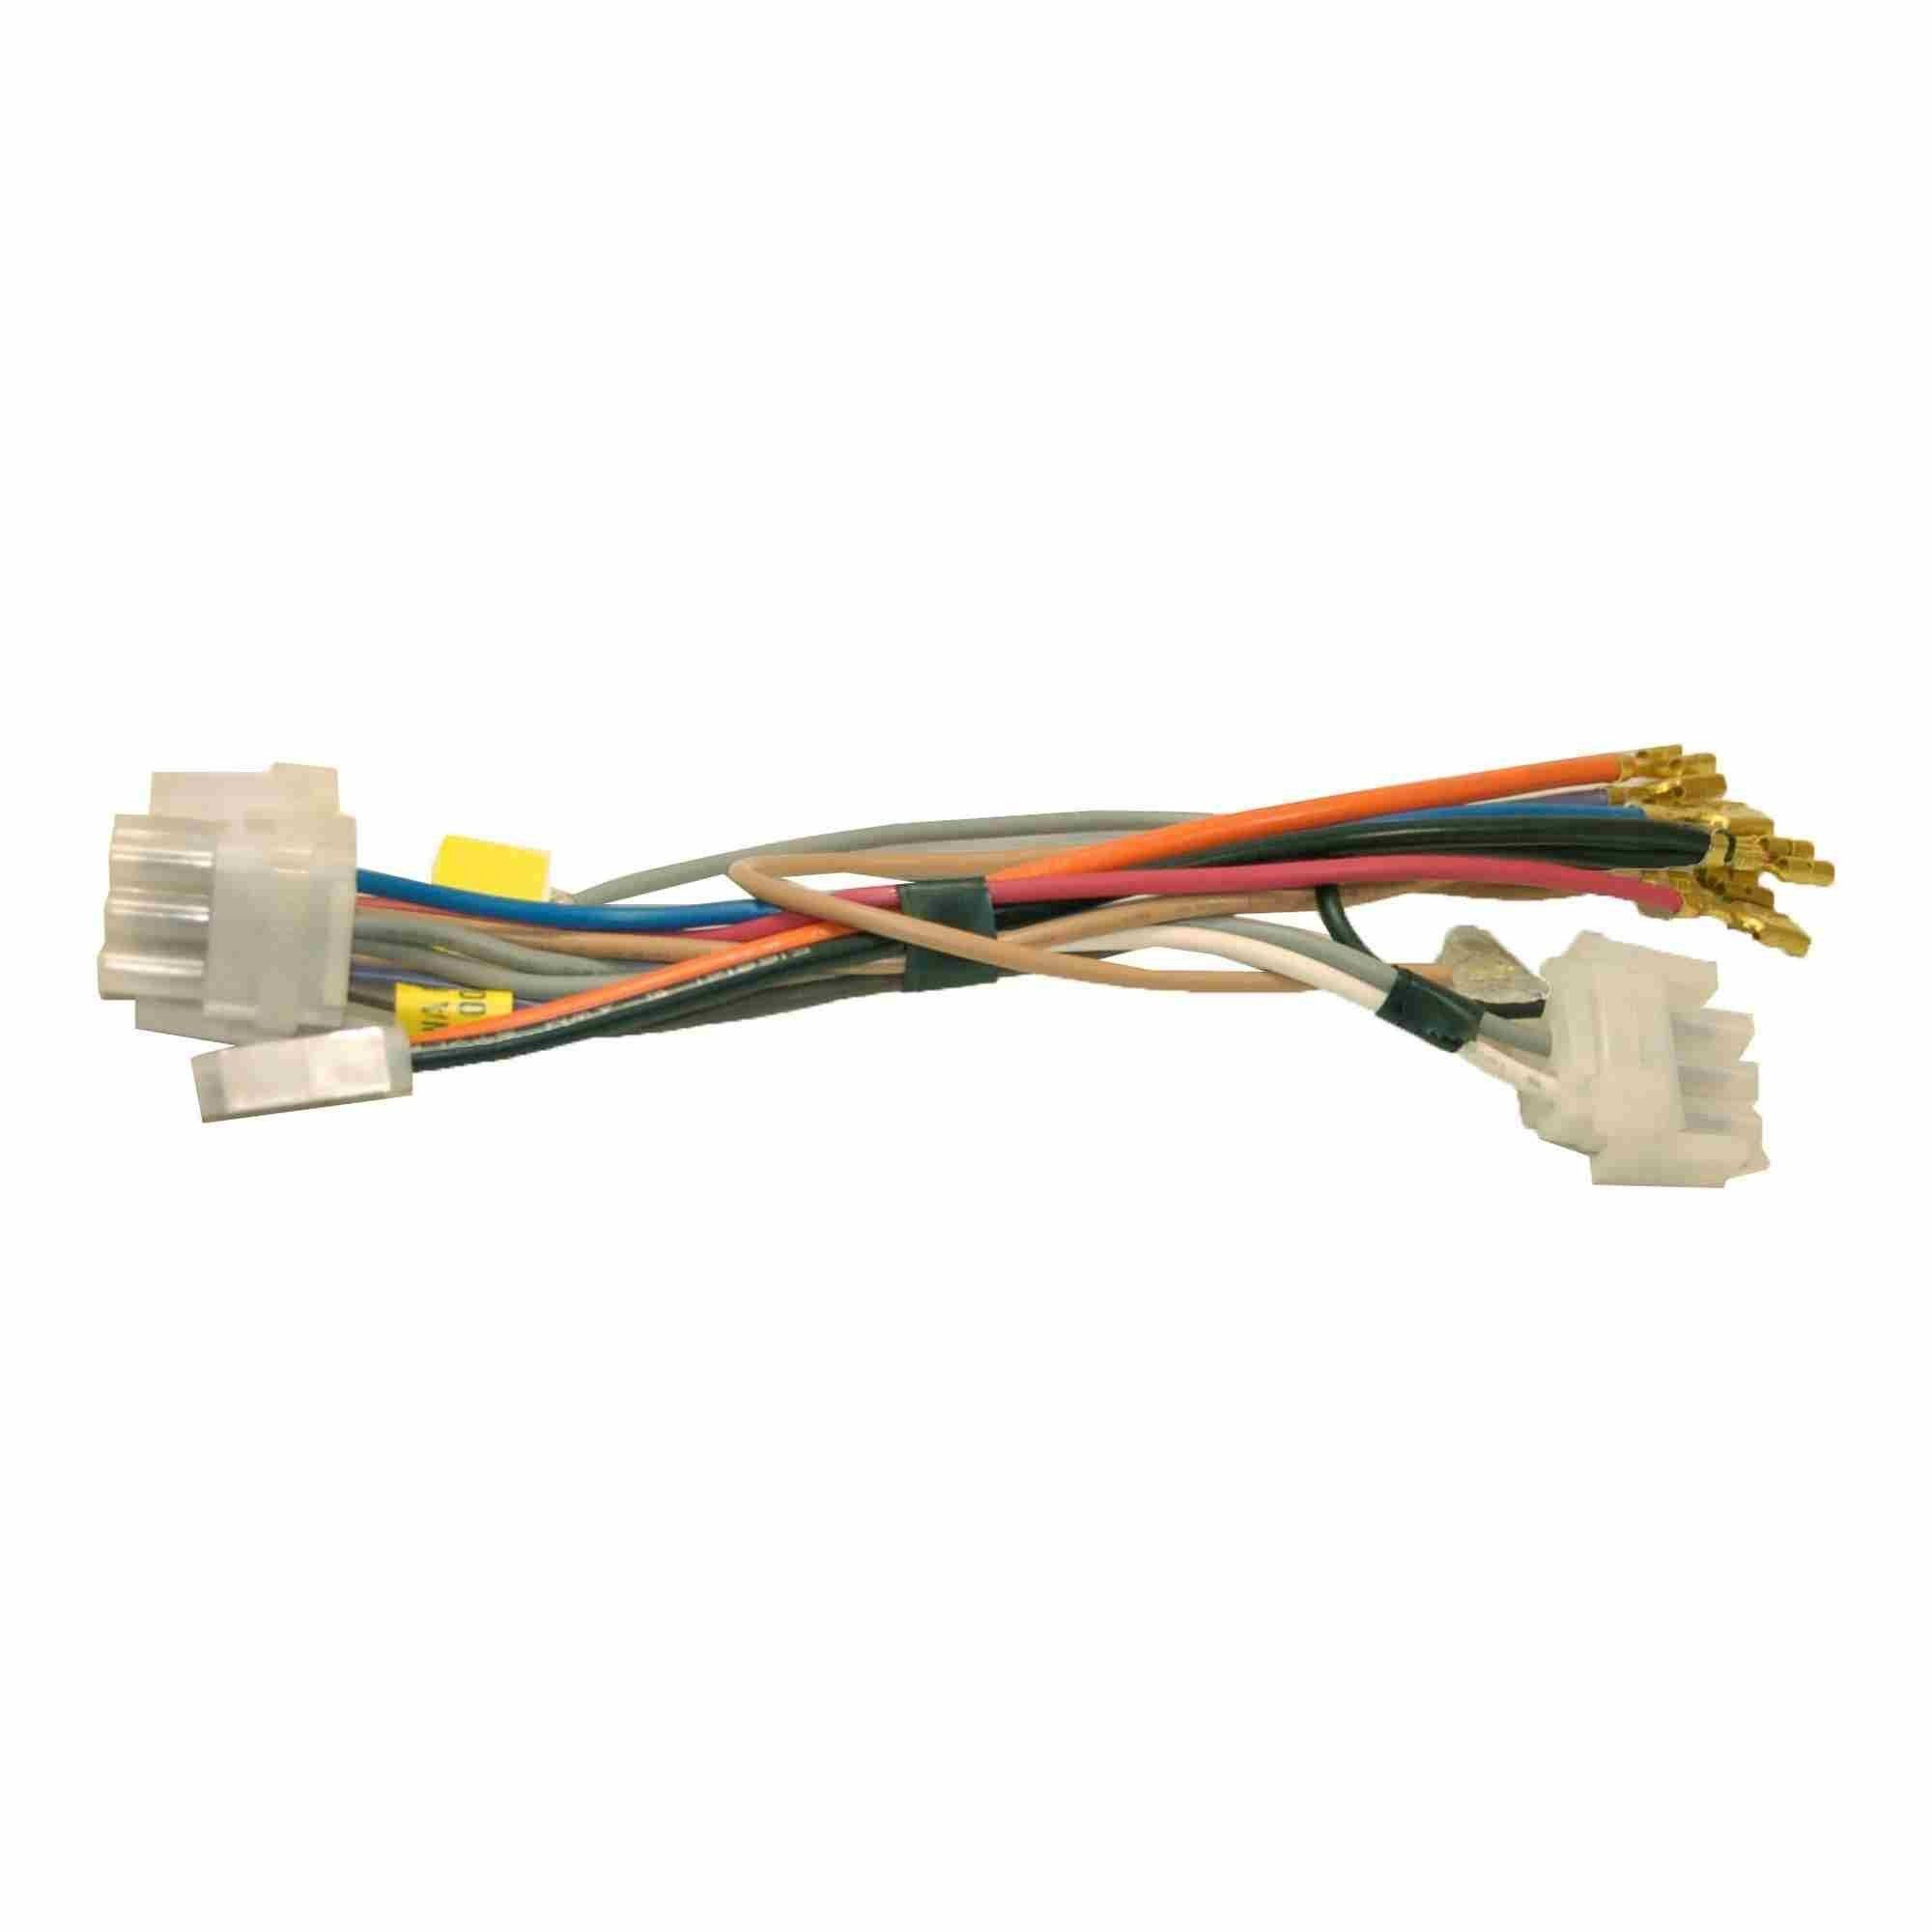 hight resolution of 131484100 clothes dryer wire harness